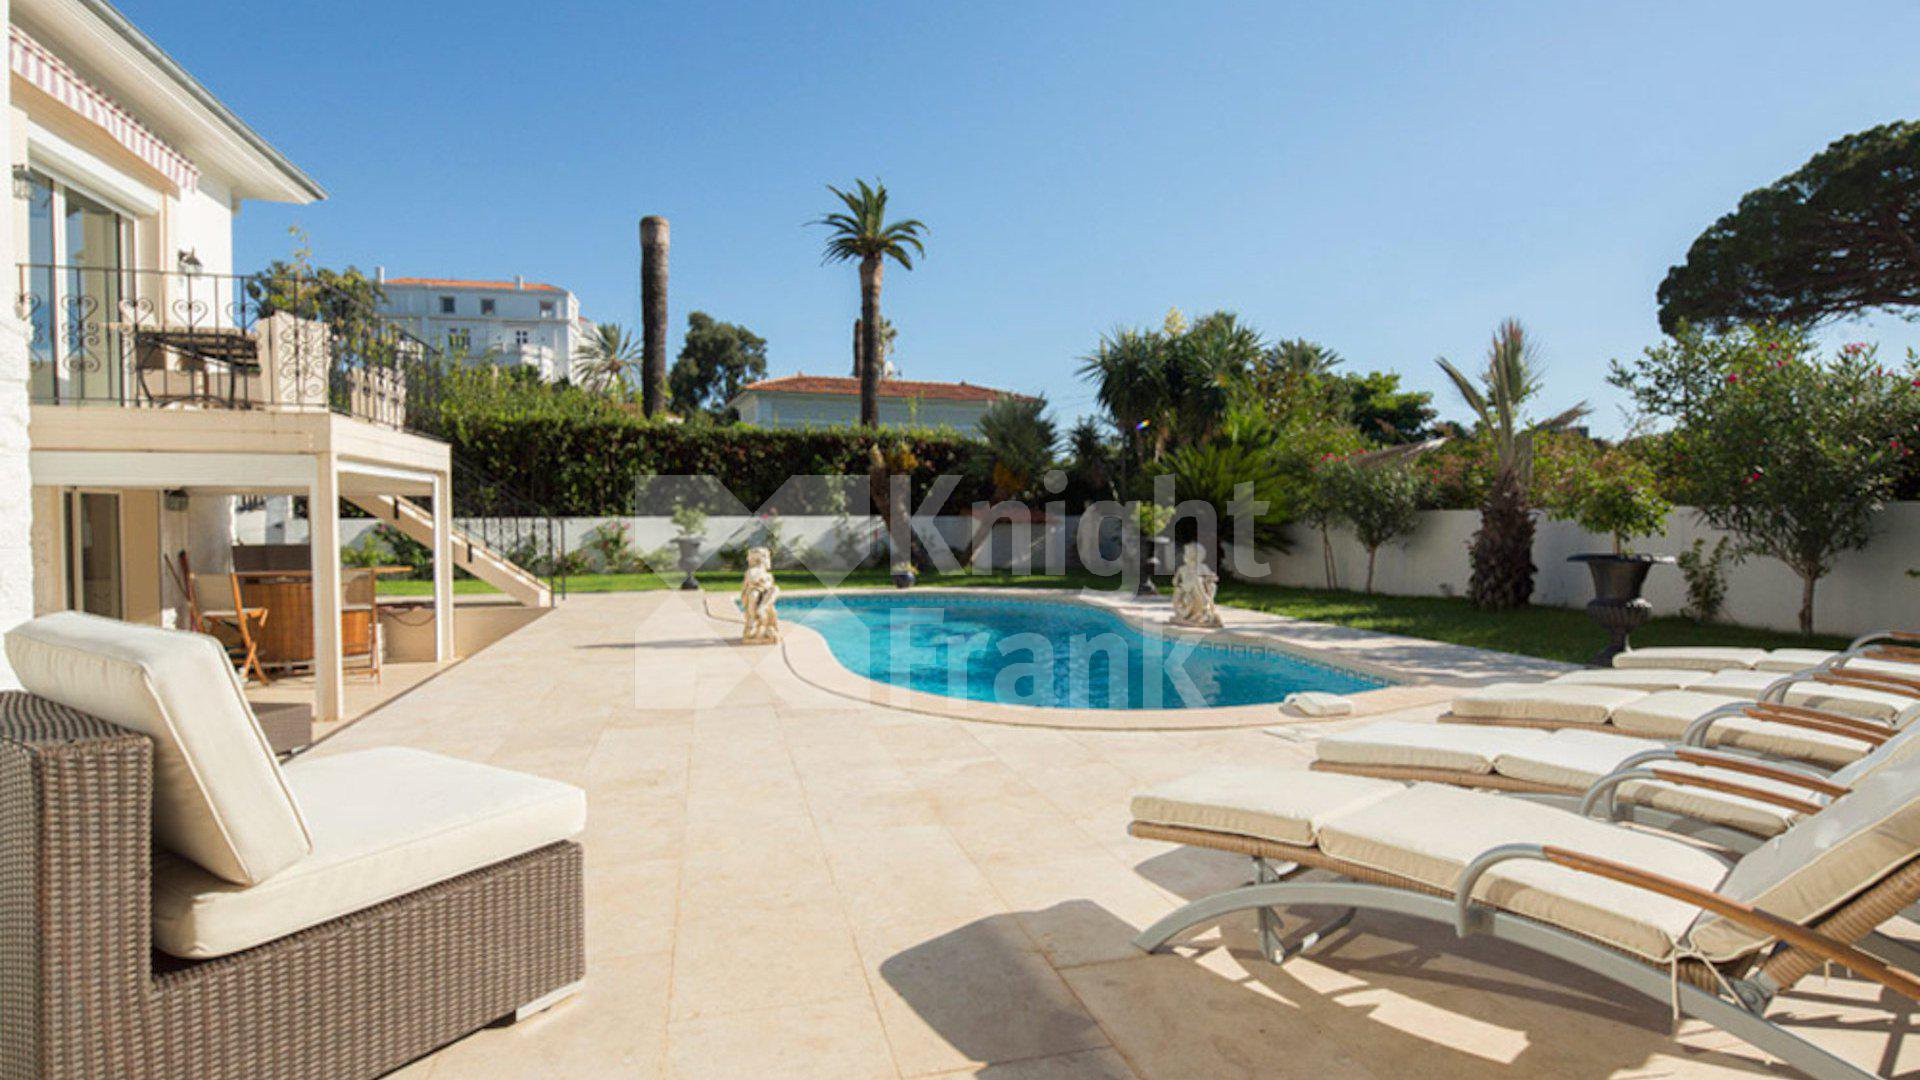 cap d 39 antibes villa with pool next to the beach. Black Bedroom Furniture Sets. Home Design Ideas